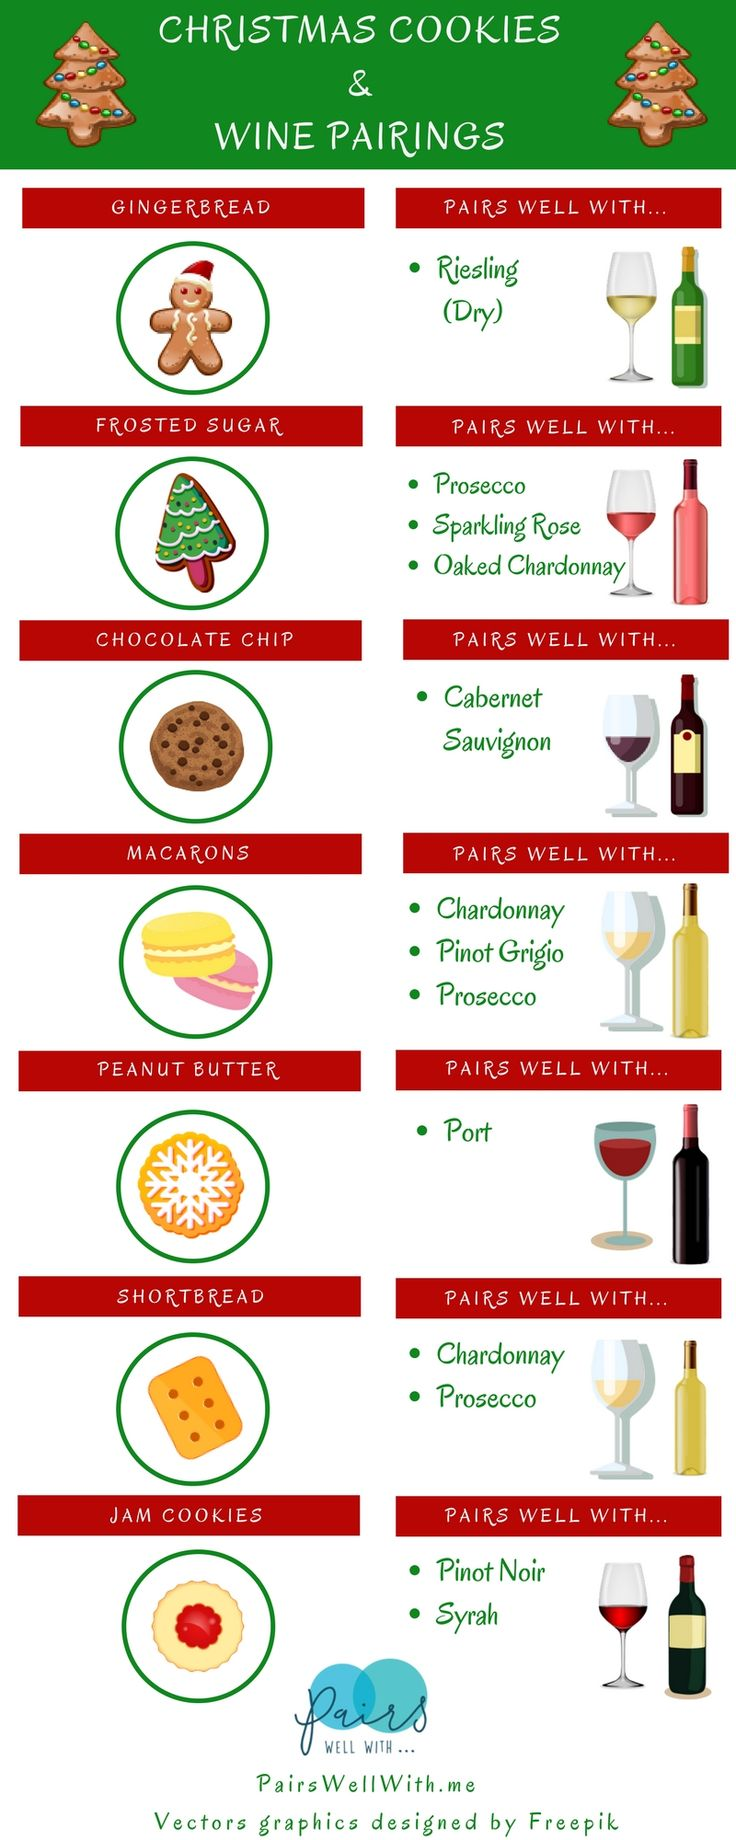 Hosting a Christmas Bake exchange?  Try these cookie and wine pairings!